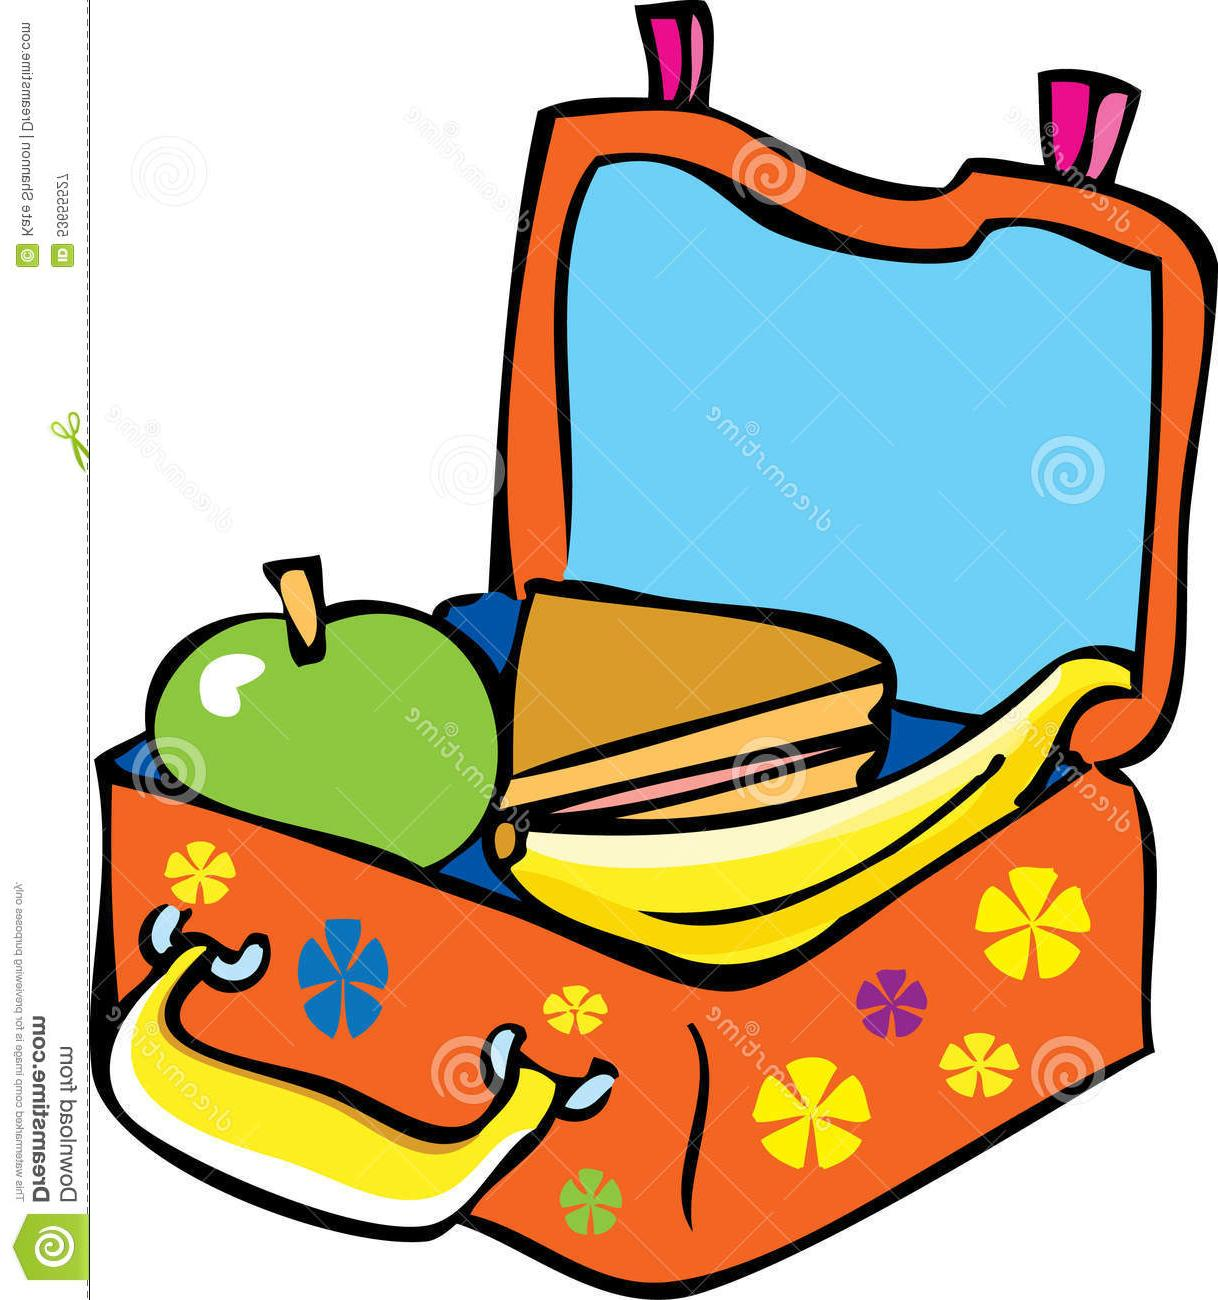 Healthy lunch clipart 2 » Clipart Station.